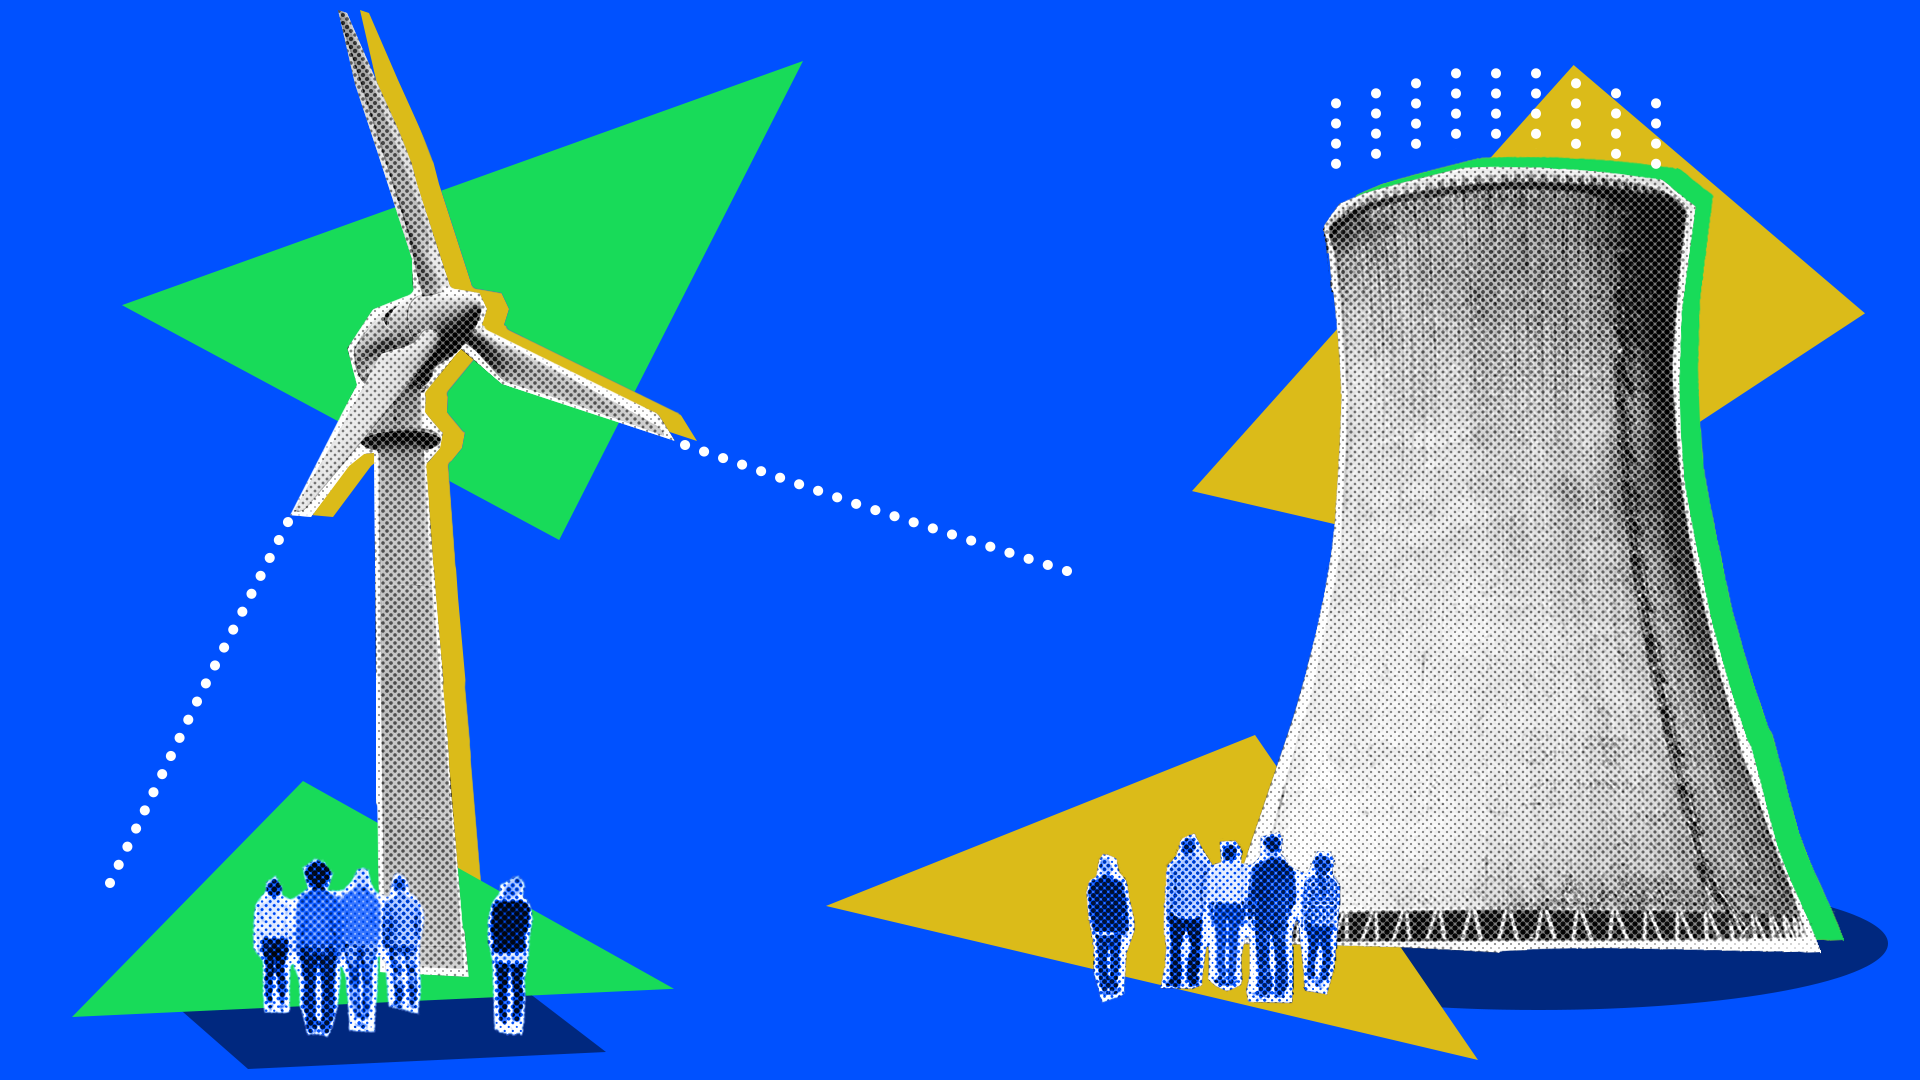 Wind power vs. nuclear power